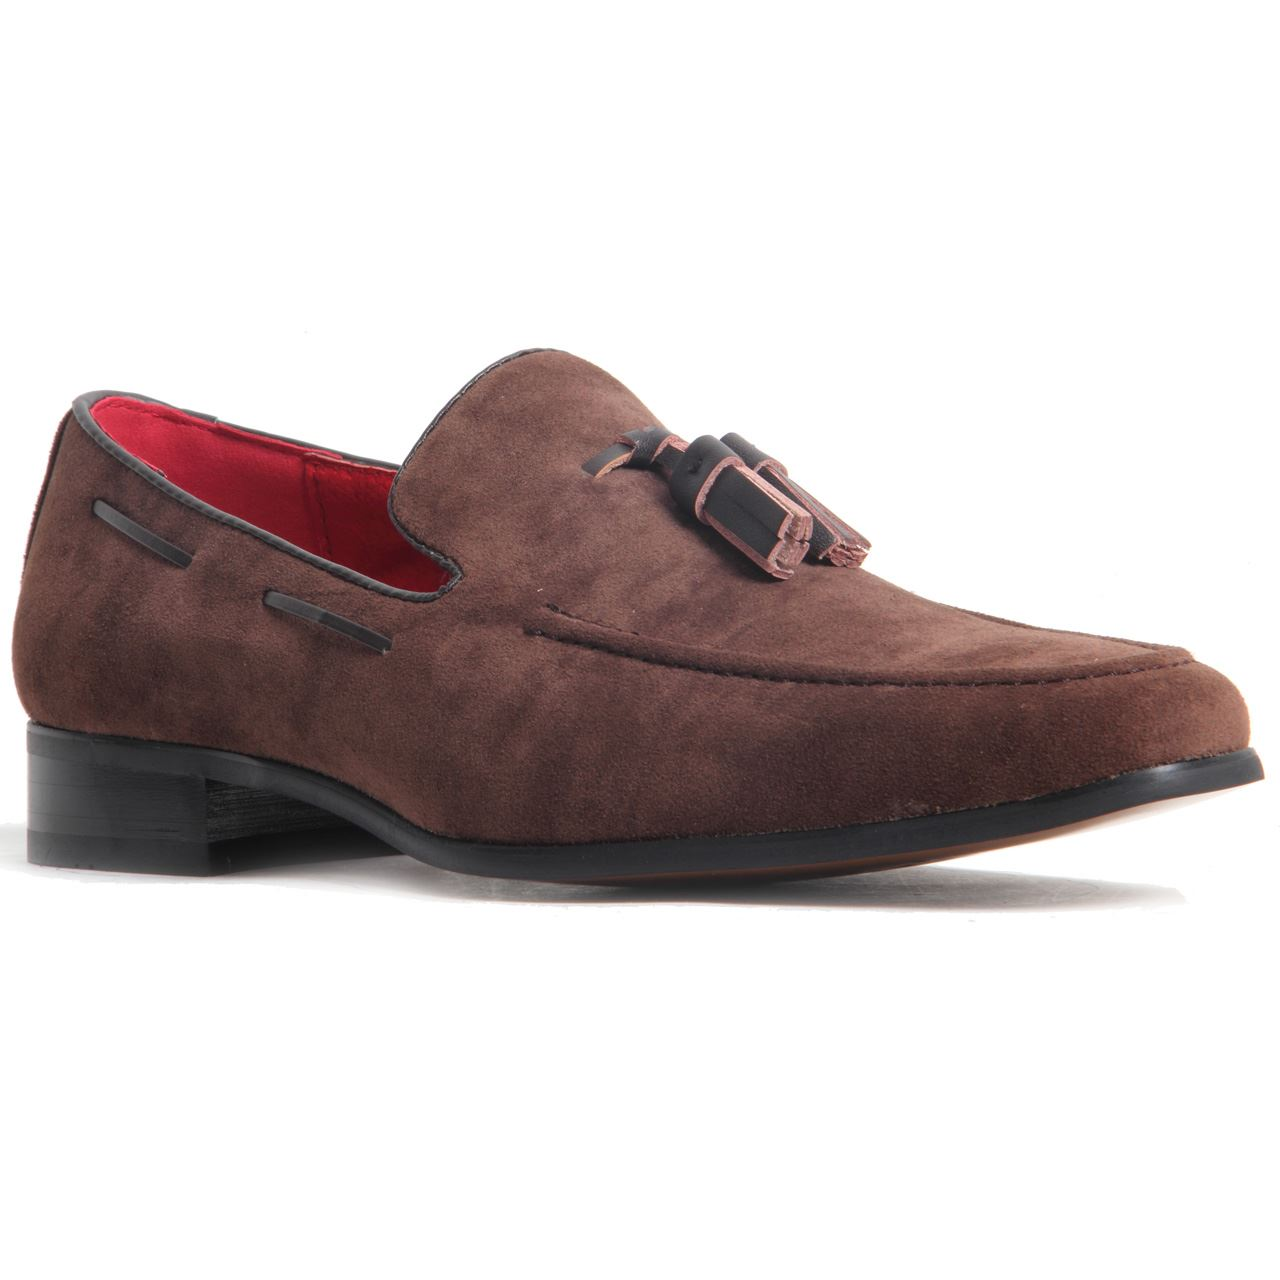 Oxy Leather Shoes